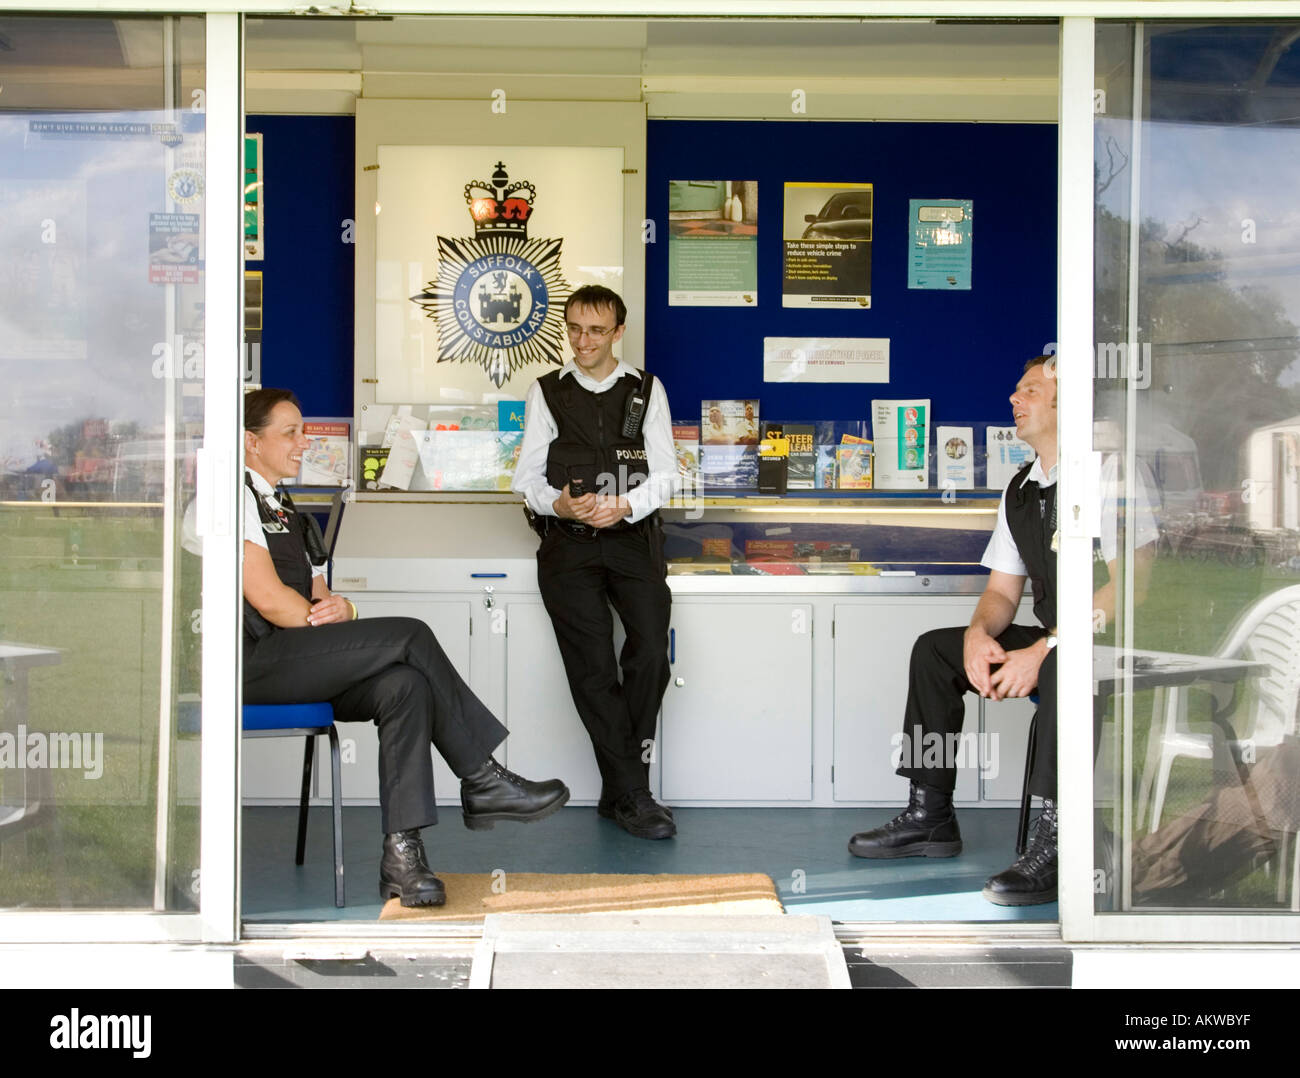 Community Policing publicity display, August 2006 in Suffolk, UK - Stock Image